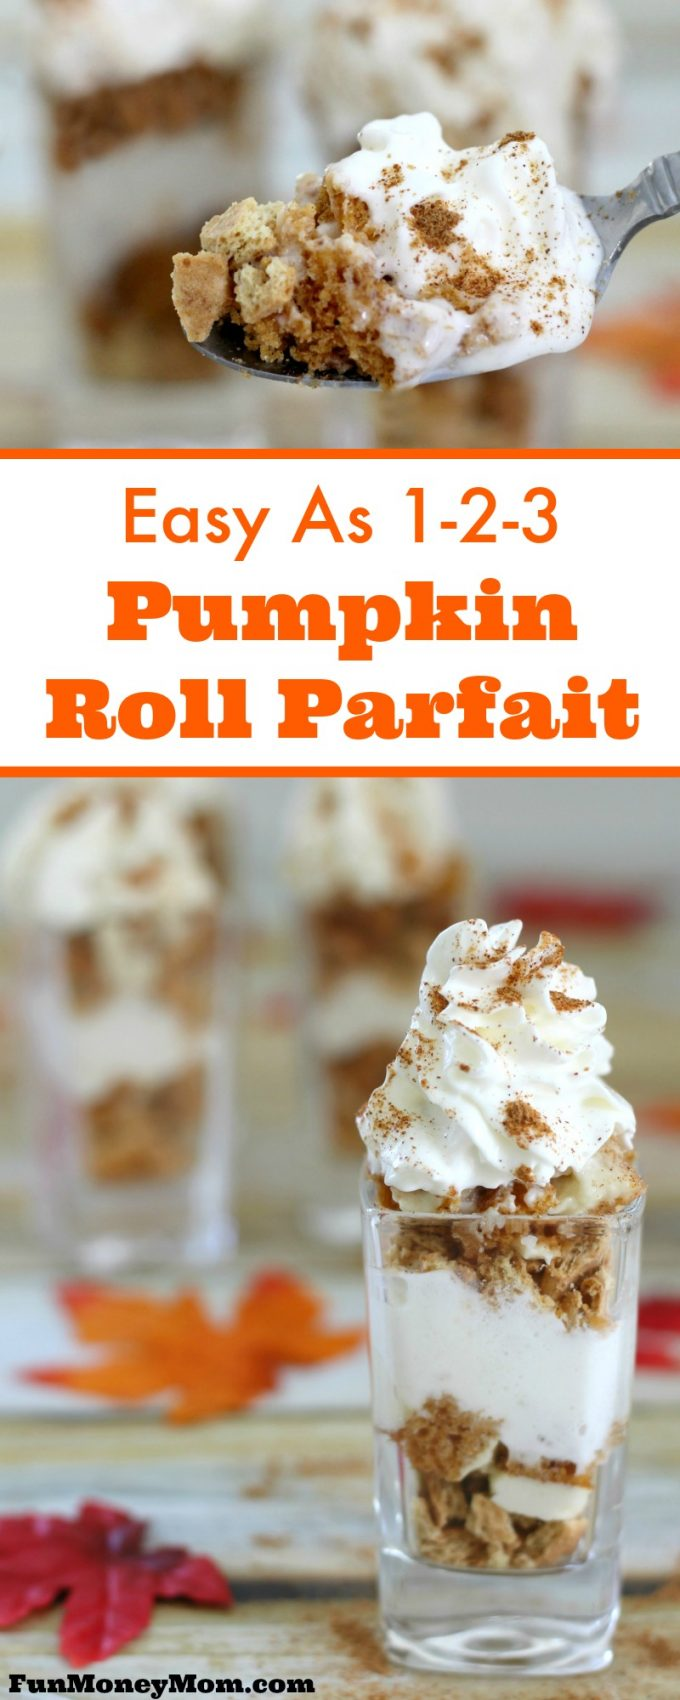 Want a super easy, yet delicious fall recipe that's as easy as 1-2-3? With just three main ingredients, this Pumpkin Roll Parfait takes just minutes to make and will disappear even faster! It's pumpkin spice and everything nice! #ad #reddiforfall